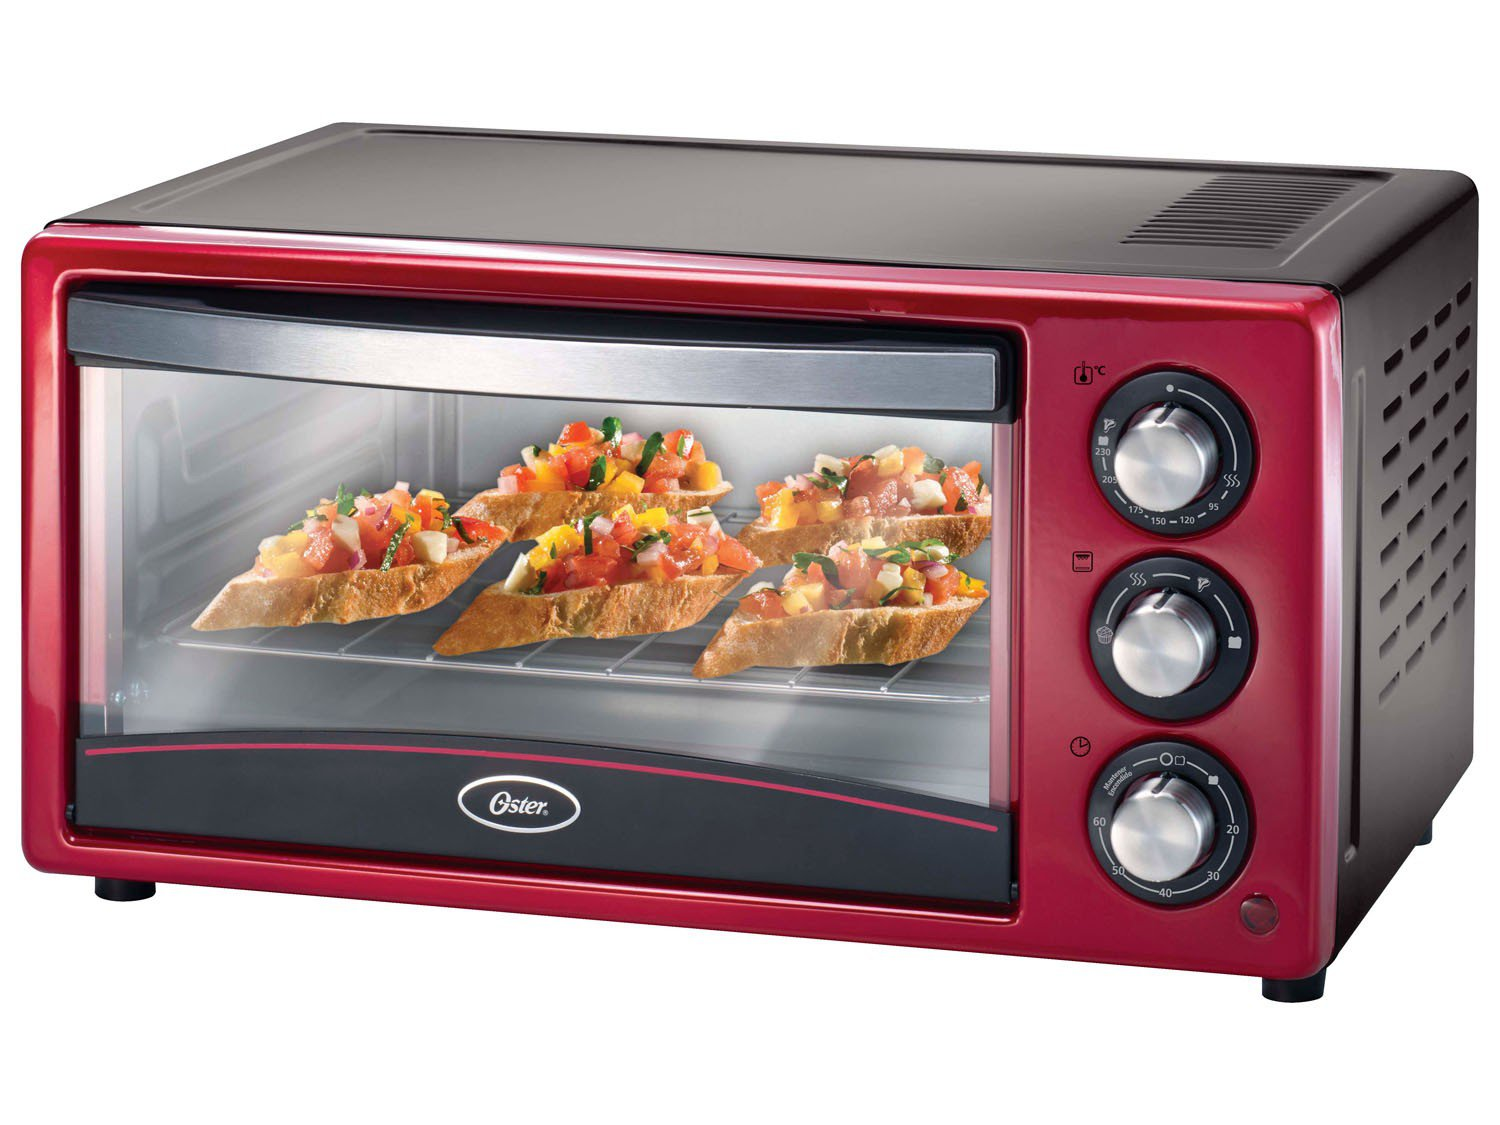 Foto 1 - Forno Elétrico Oster Convection Cook 18L Grill - Timer